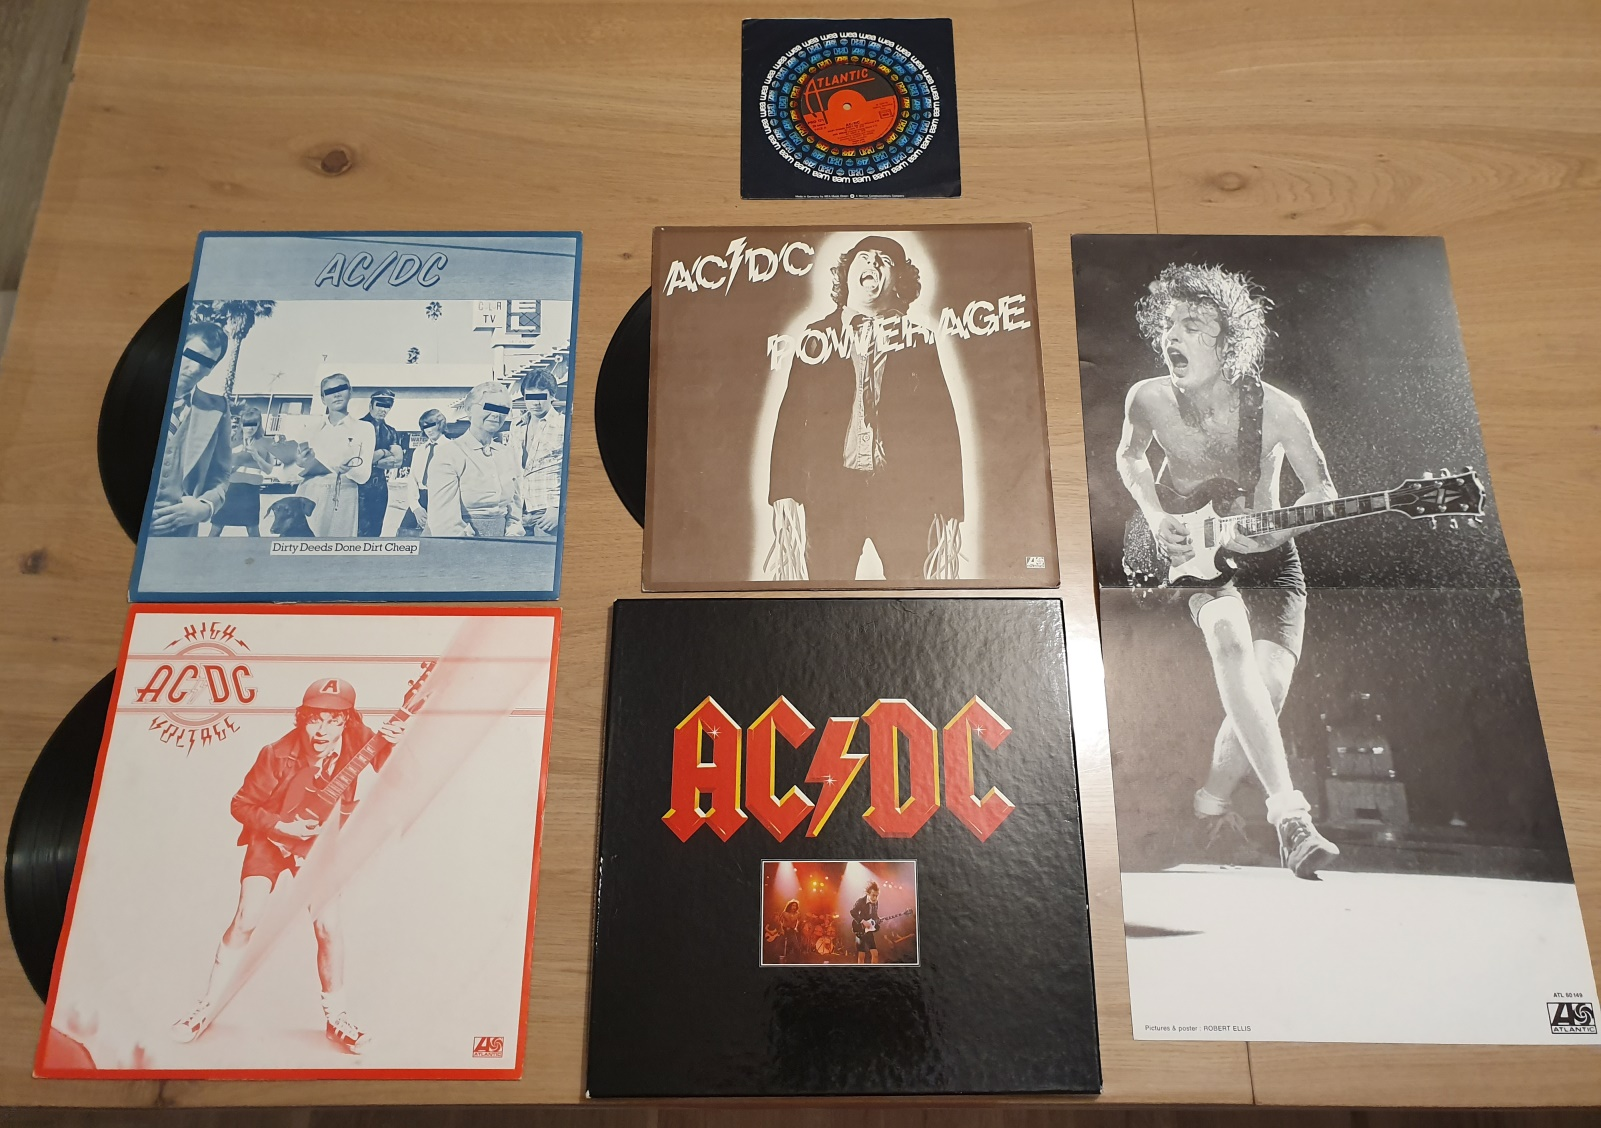 ACDC_Coffret_Atlantic.jpg